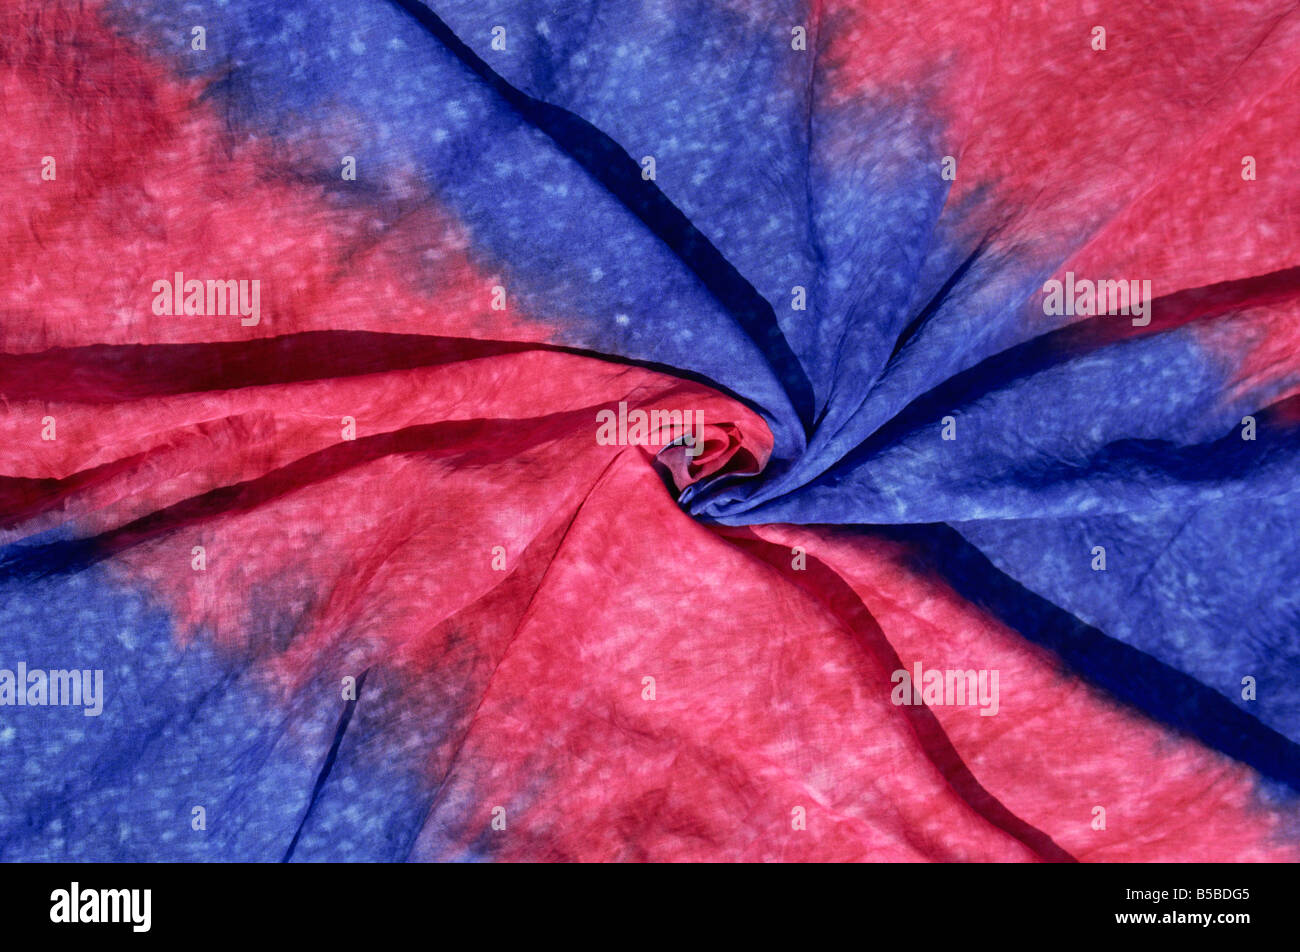 Pink and blue hand-dyed fabric, Apia, Upolu, Western Samoa, Pacific Islands, Pacific - Stock Image